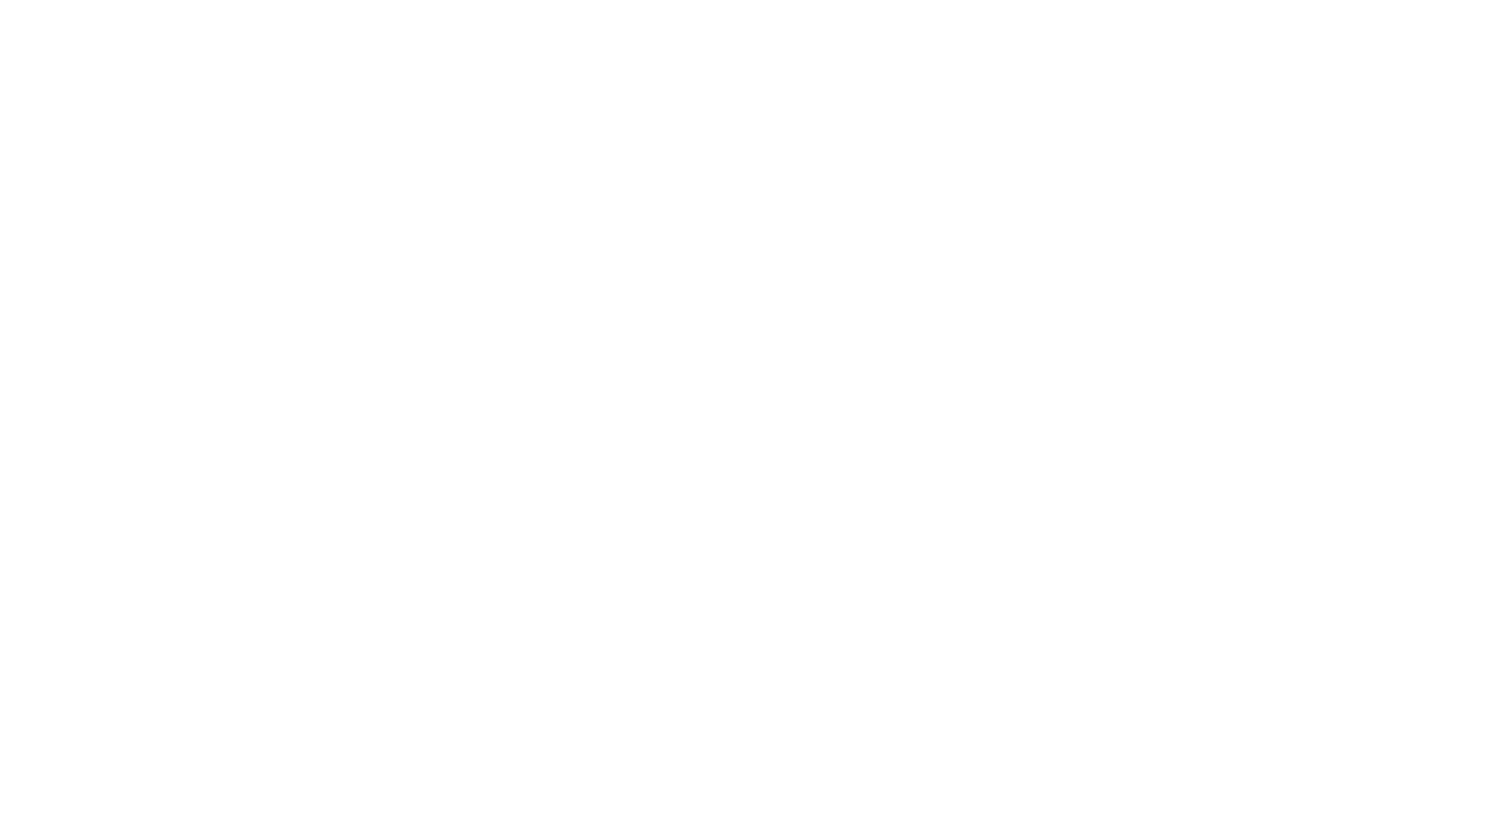 Multiply Naz